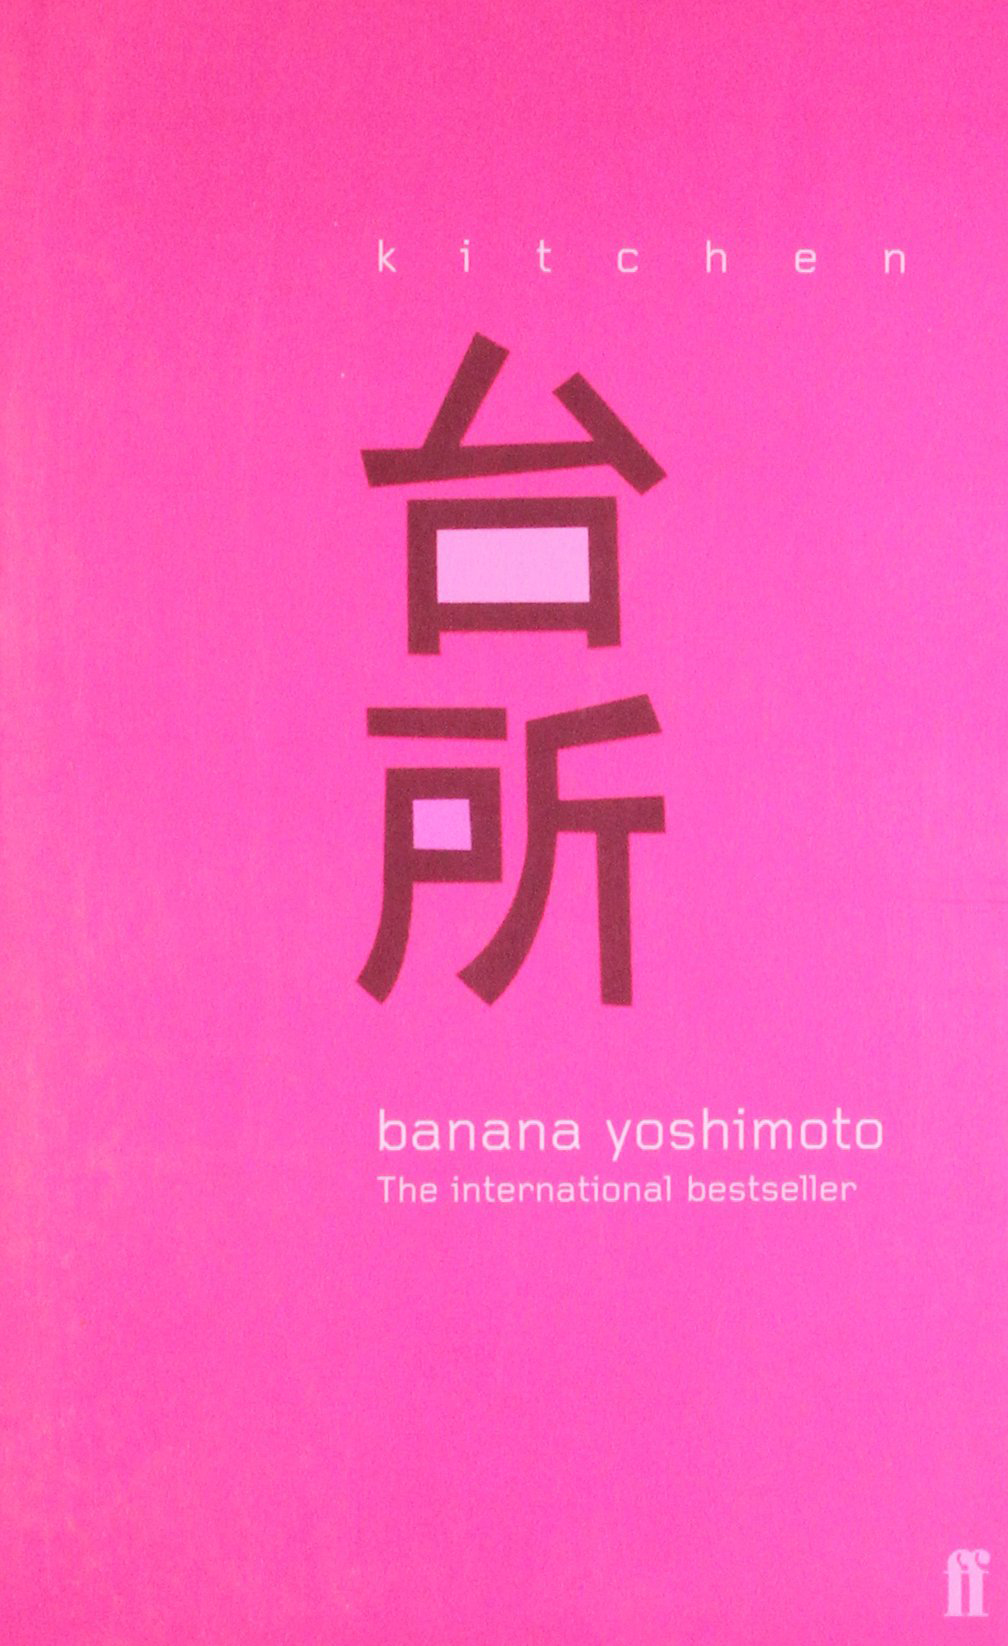 Kitchen the japan times for Kitchen banana yoshimoto analysis